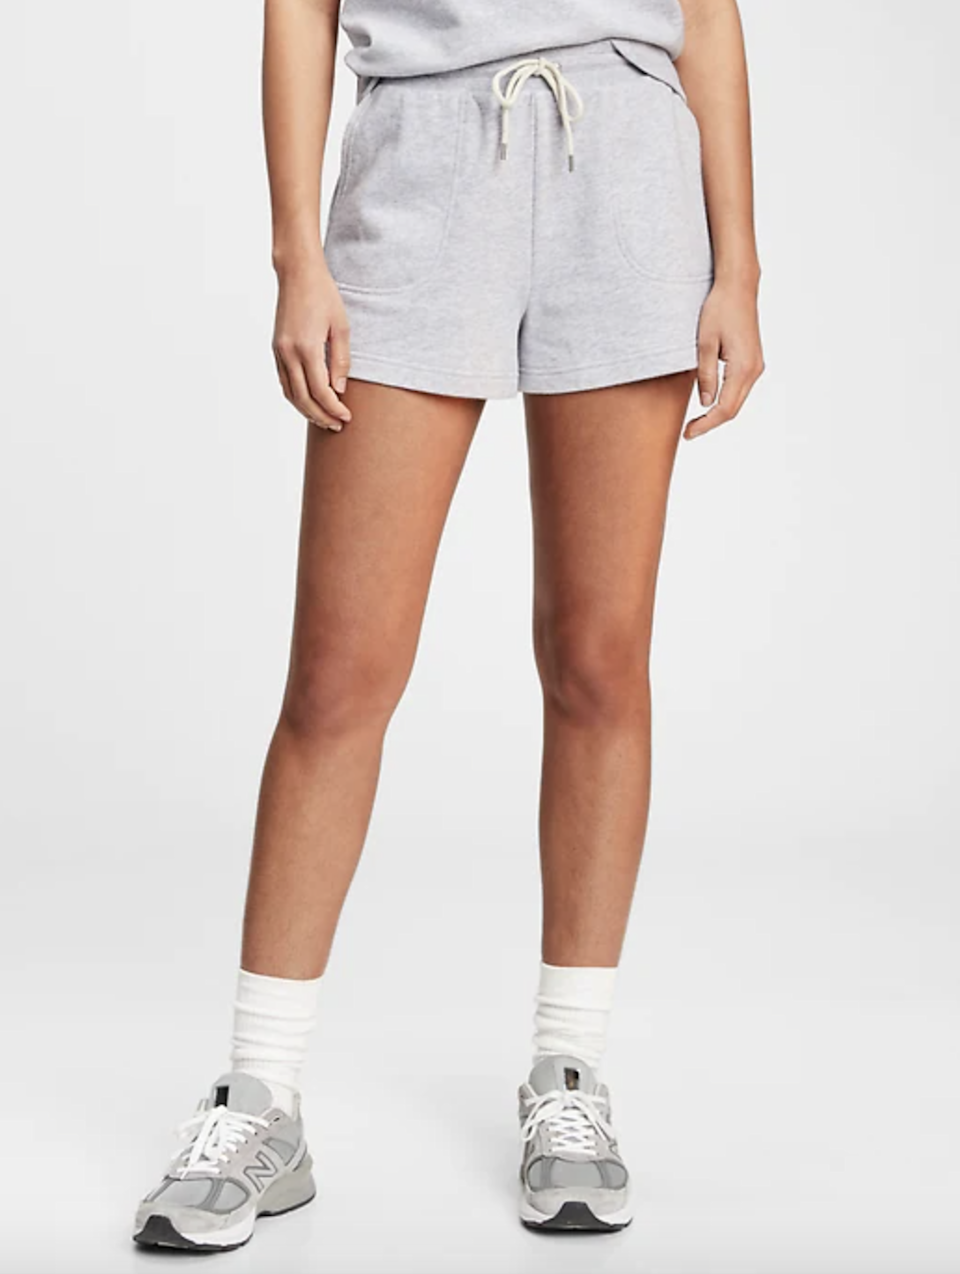 "Looking for a more sporty fit? Try this grey number from Gap, featuring deep pockets and a pre-washed terry fabric for a lived-in look. $40, Gap. <a href=""https://www.gap.com/browse/product.do?pid=765070052"" rel=""nofollow noopener"" target=""_blank"" data-ylk=""slk:Get it now!"" class=""link rapid-noclick-resp"">Get it now!</a>"